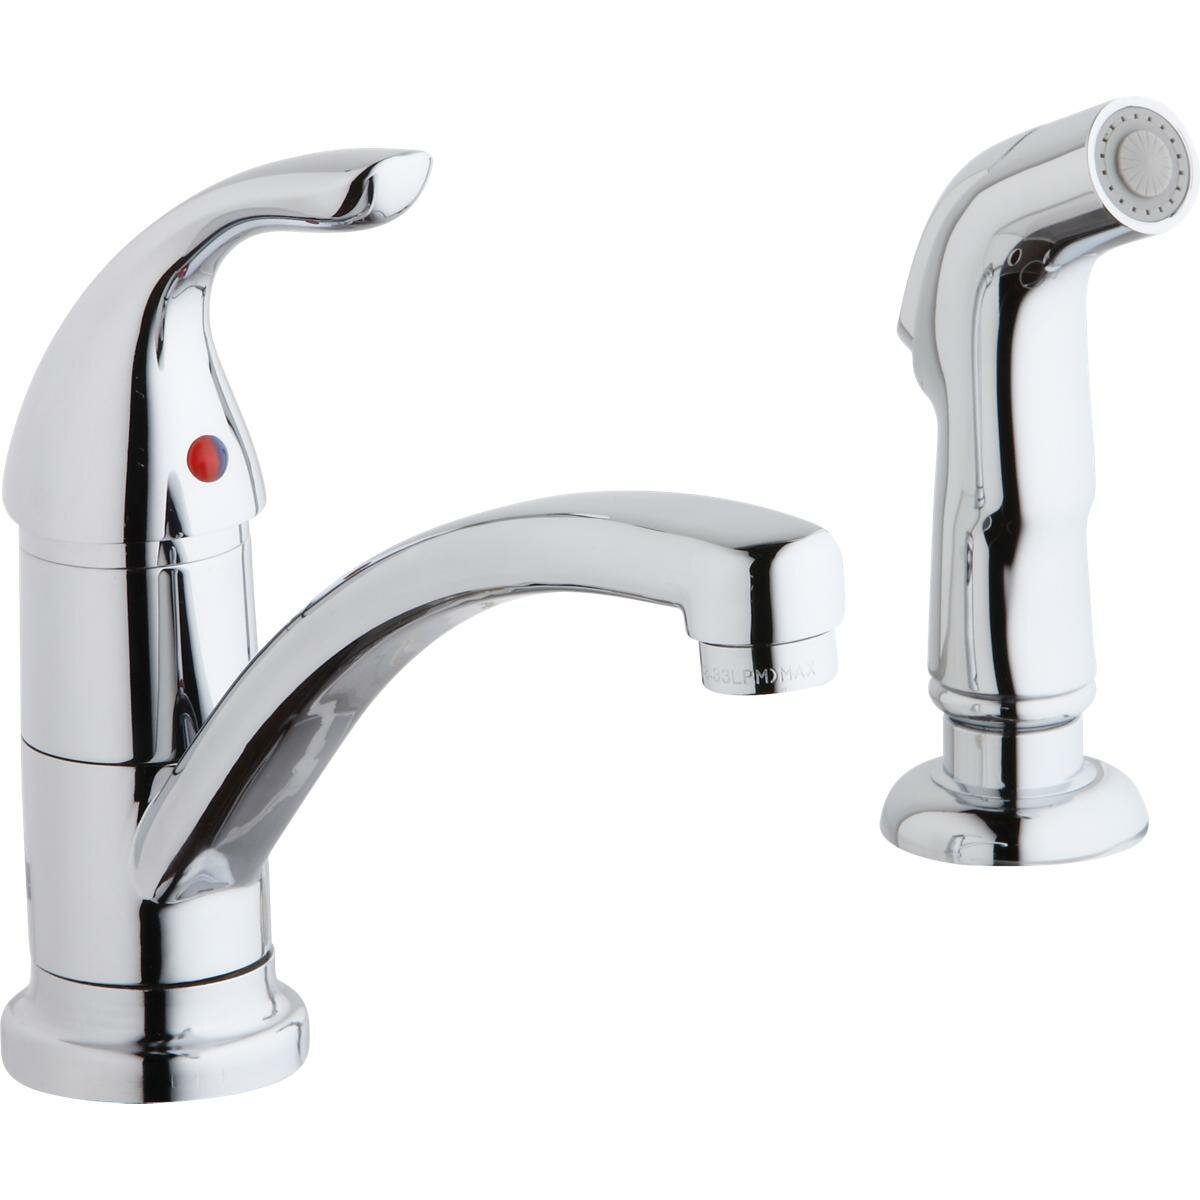 Elkay Single Handle Kitchen Faucet With Side Spray Wayfair The Wiring Above Can Be Used For Time Switches As Energy